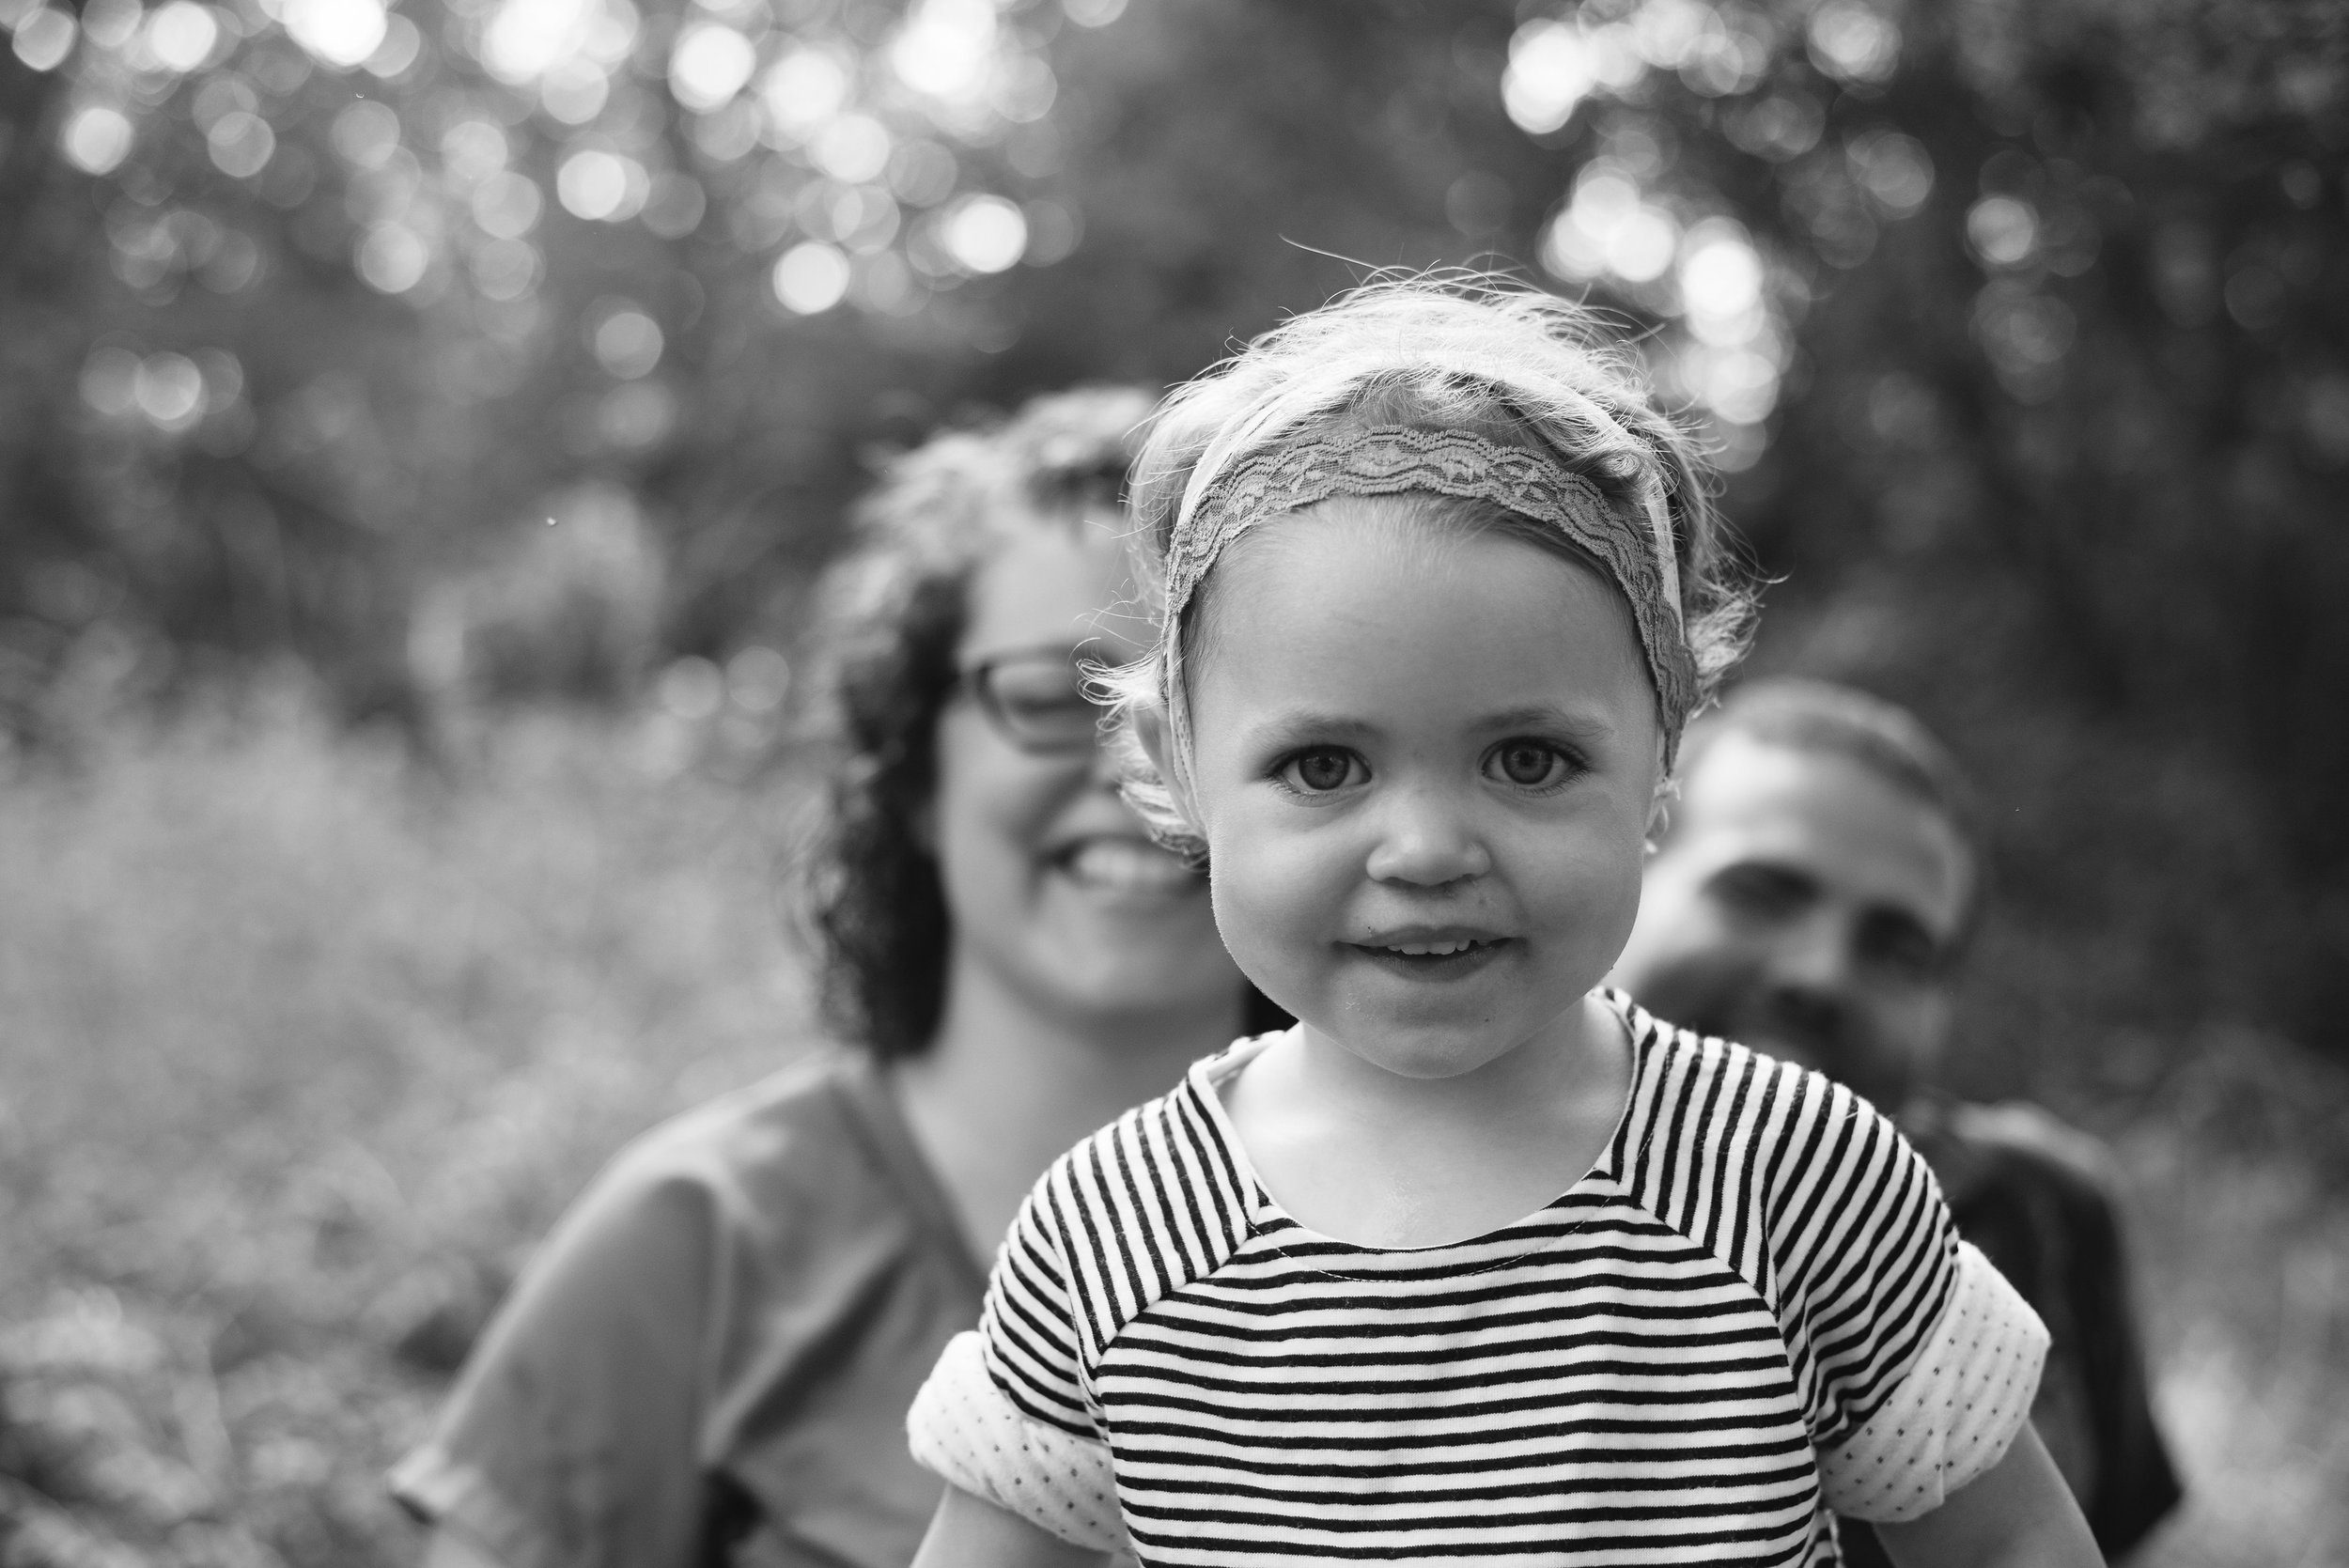 090515BurmeisterFamily_32-Copy1.jpg